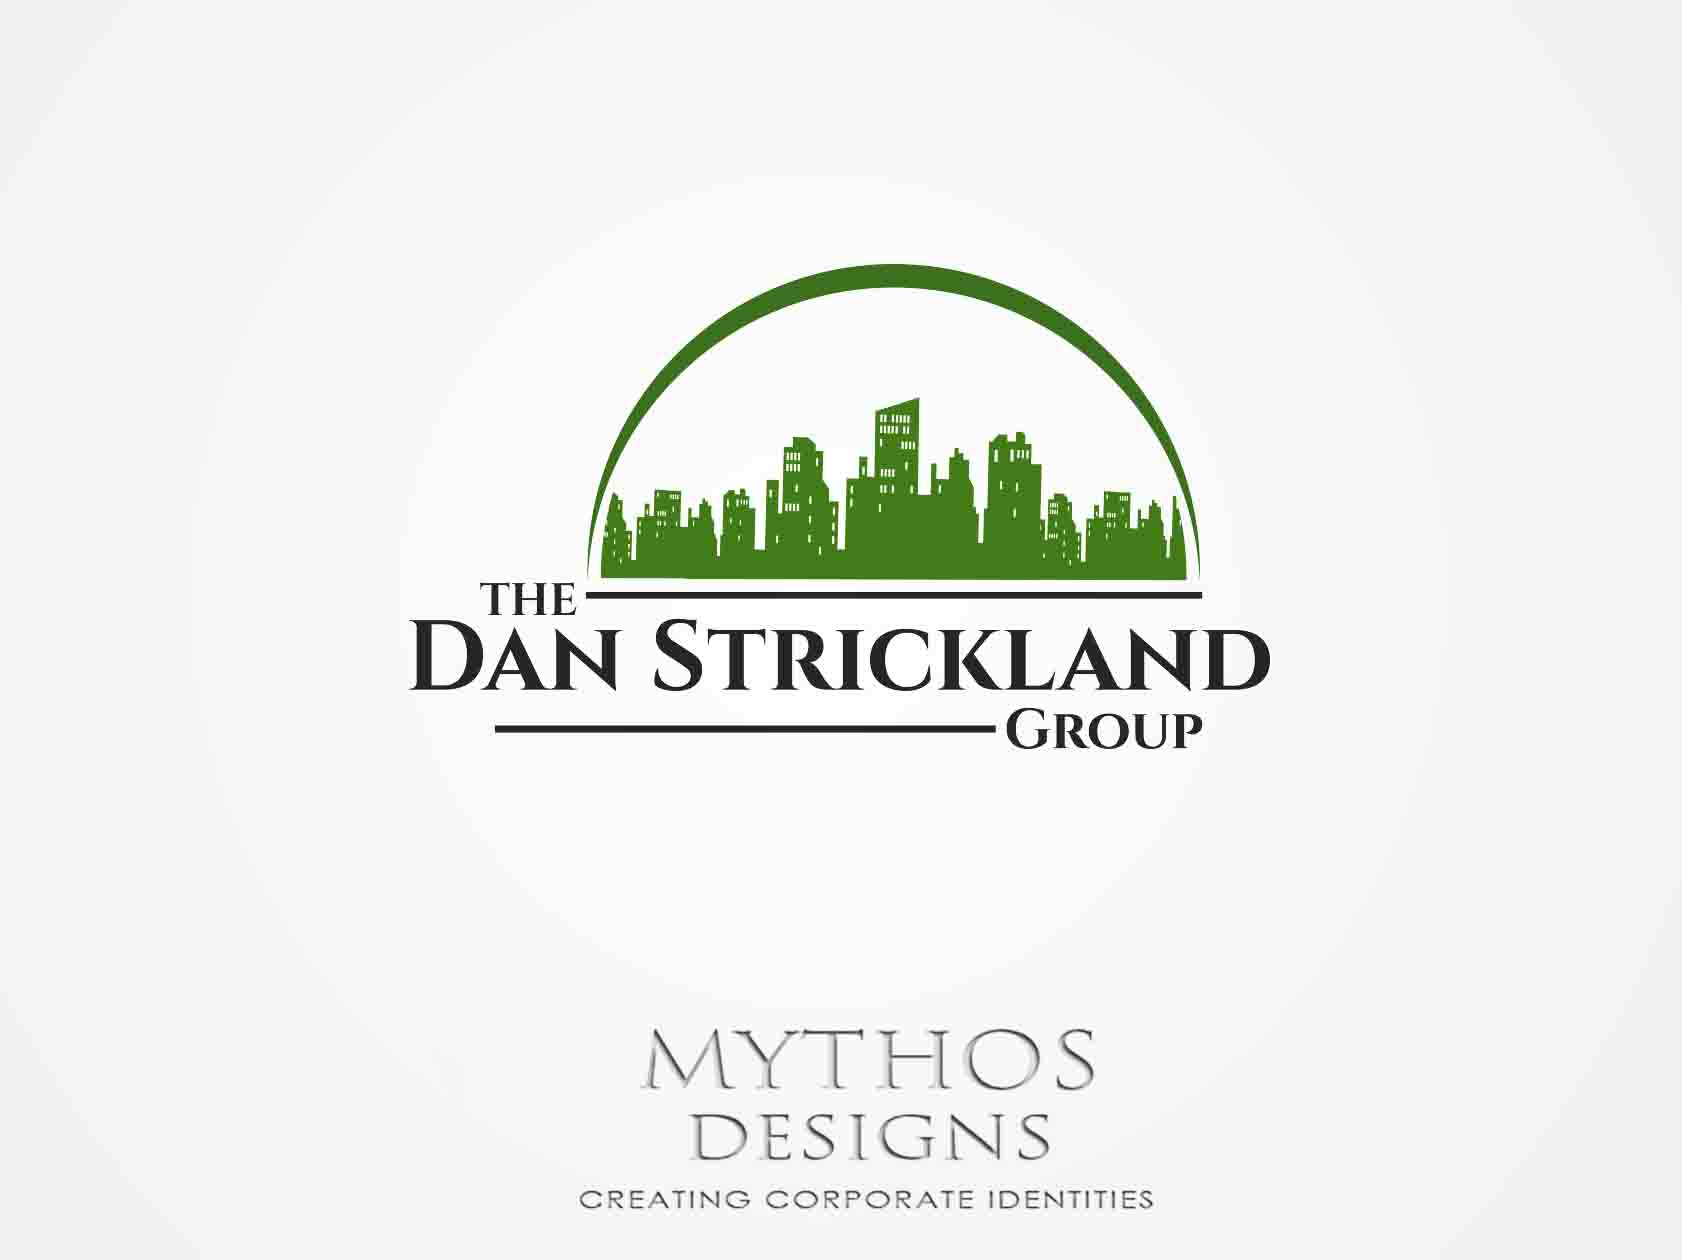 Logo Design by Mythos Designs - Entry No. 233 in the Logo Design Contest Creative Logo Design for The Dan Strickland Group.